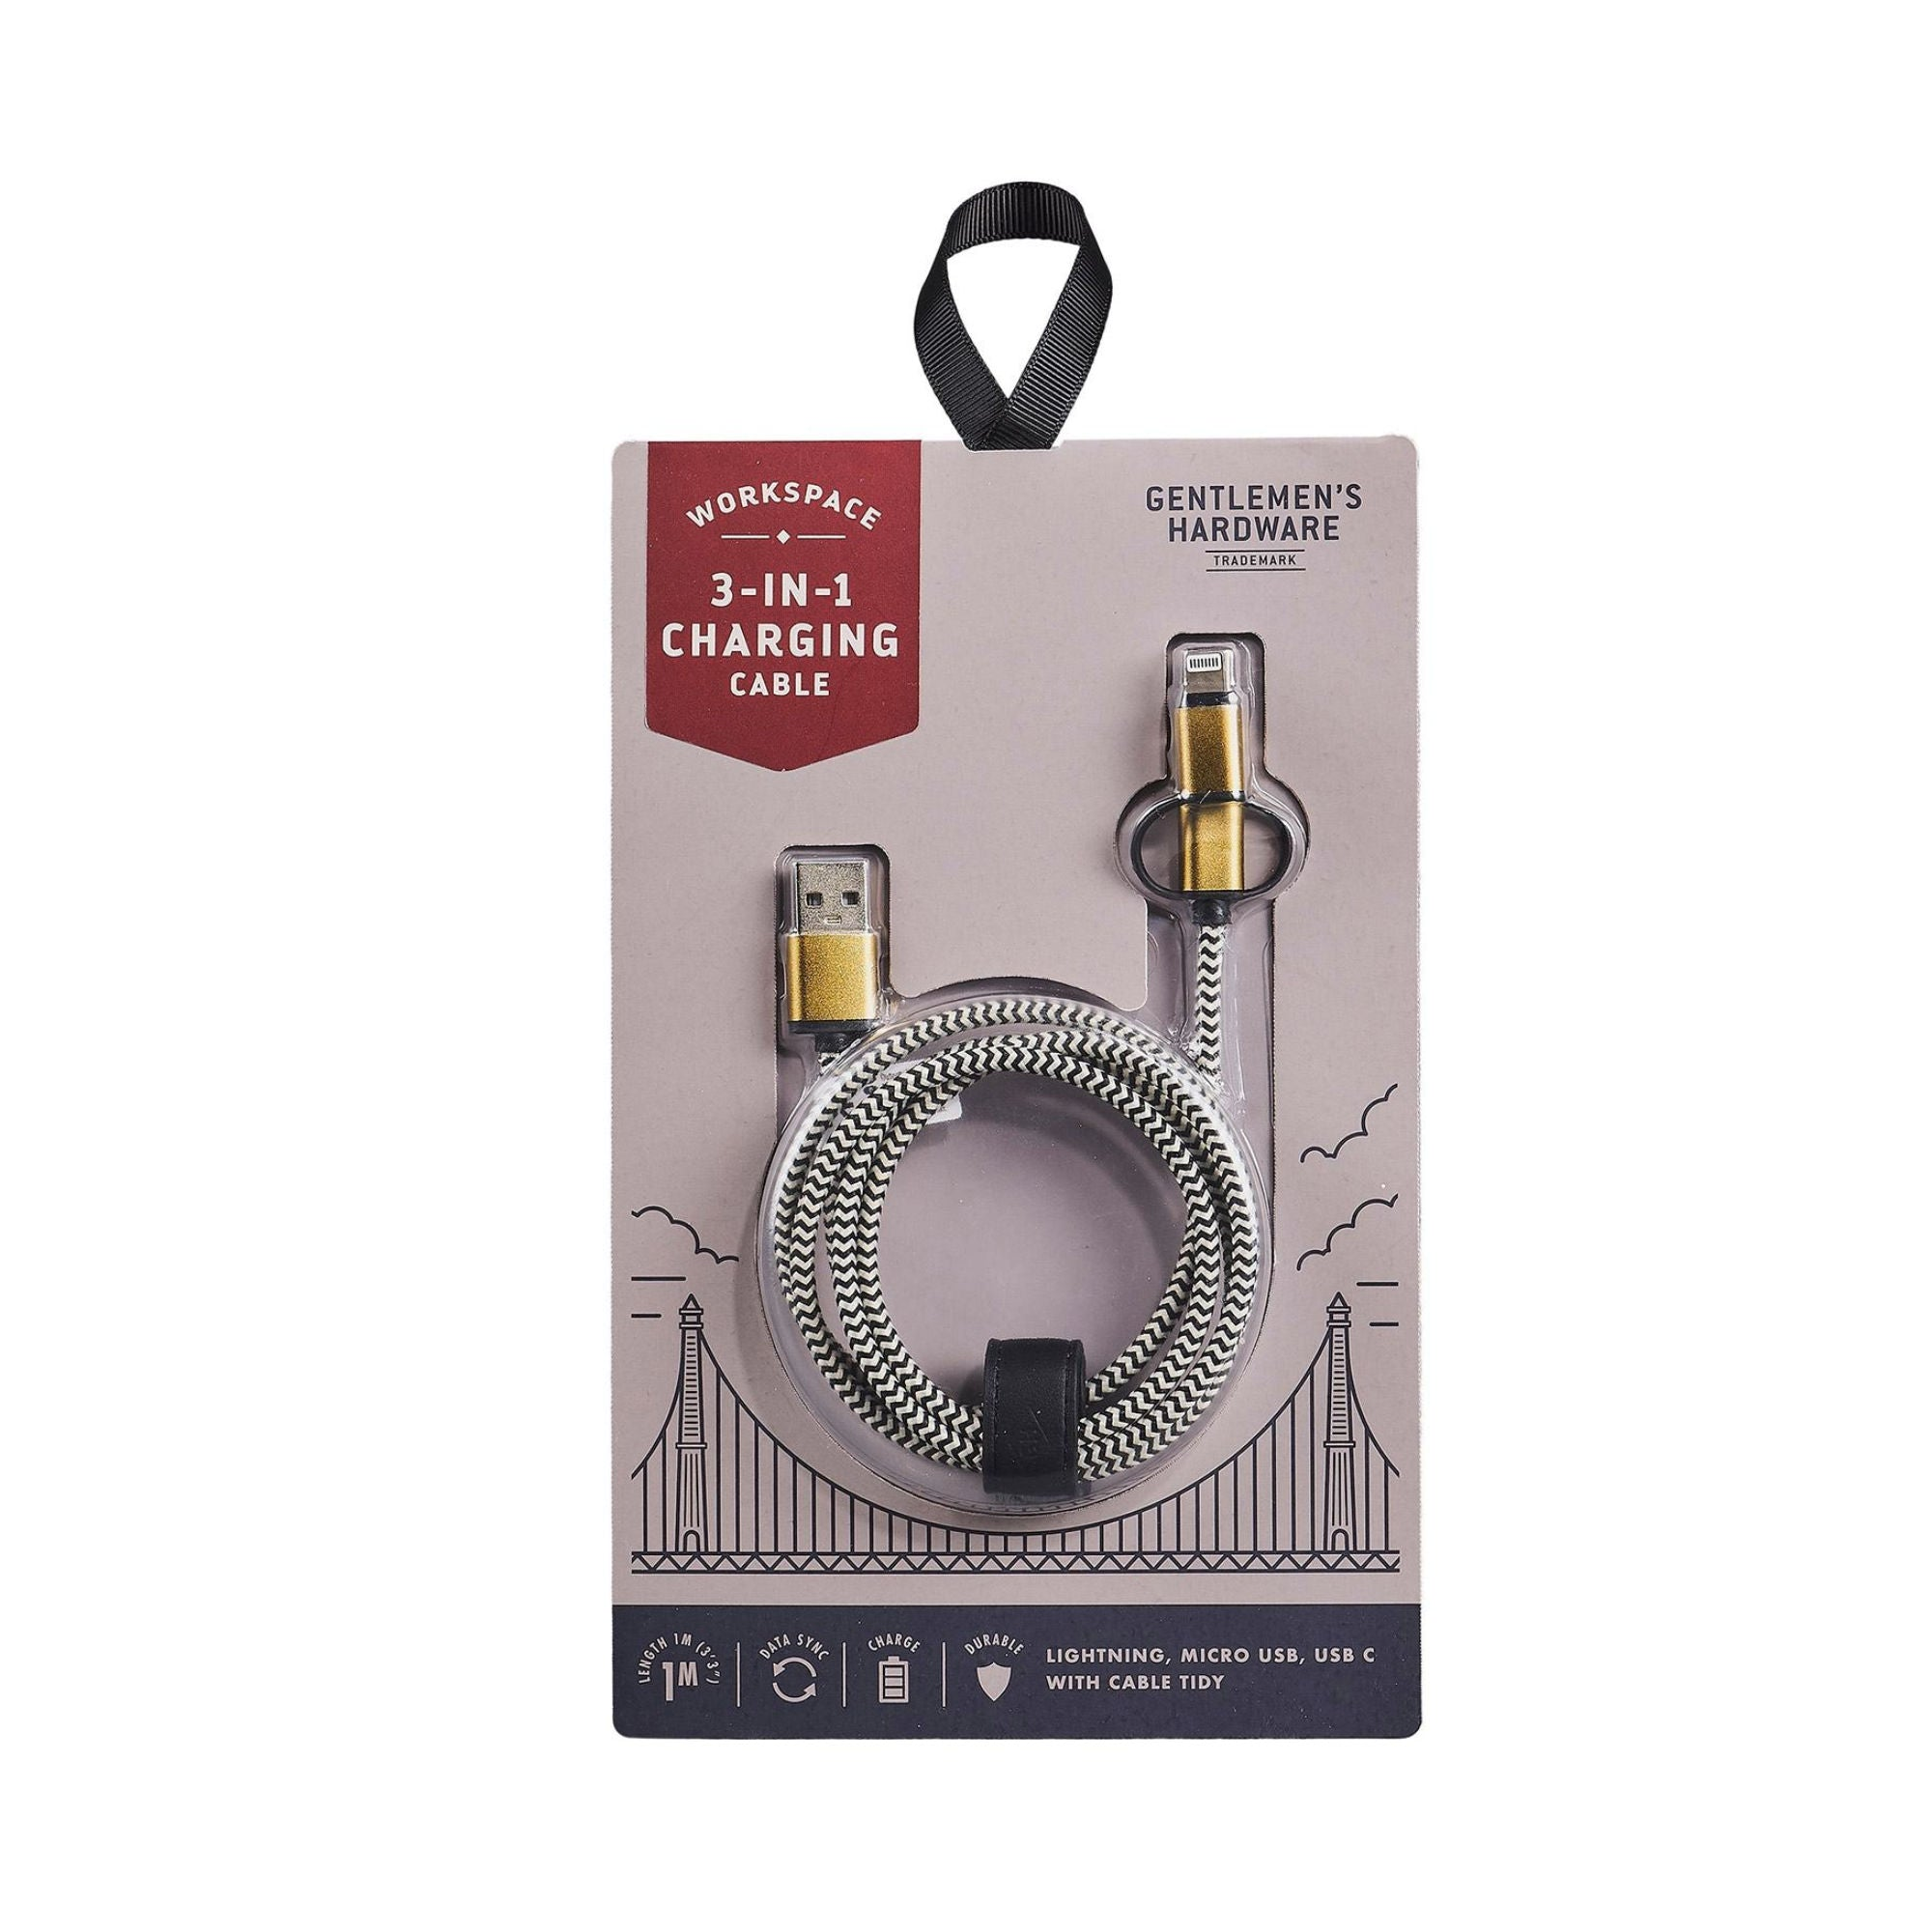 Gentlemen's Hardware 3-in-1 Charging Cable